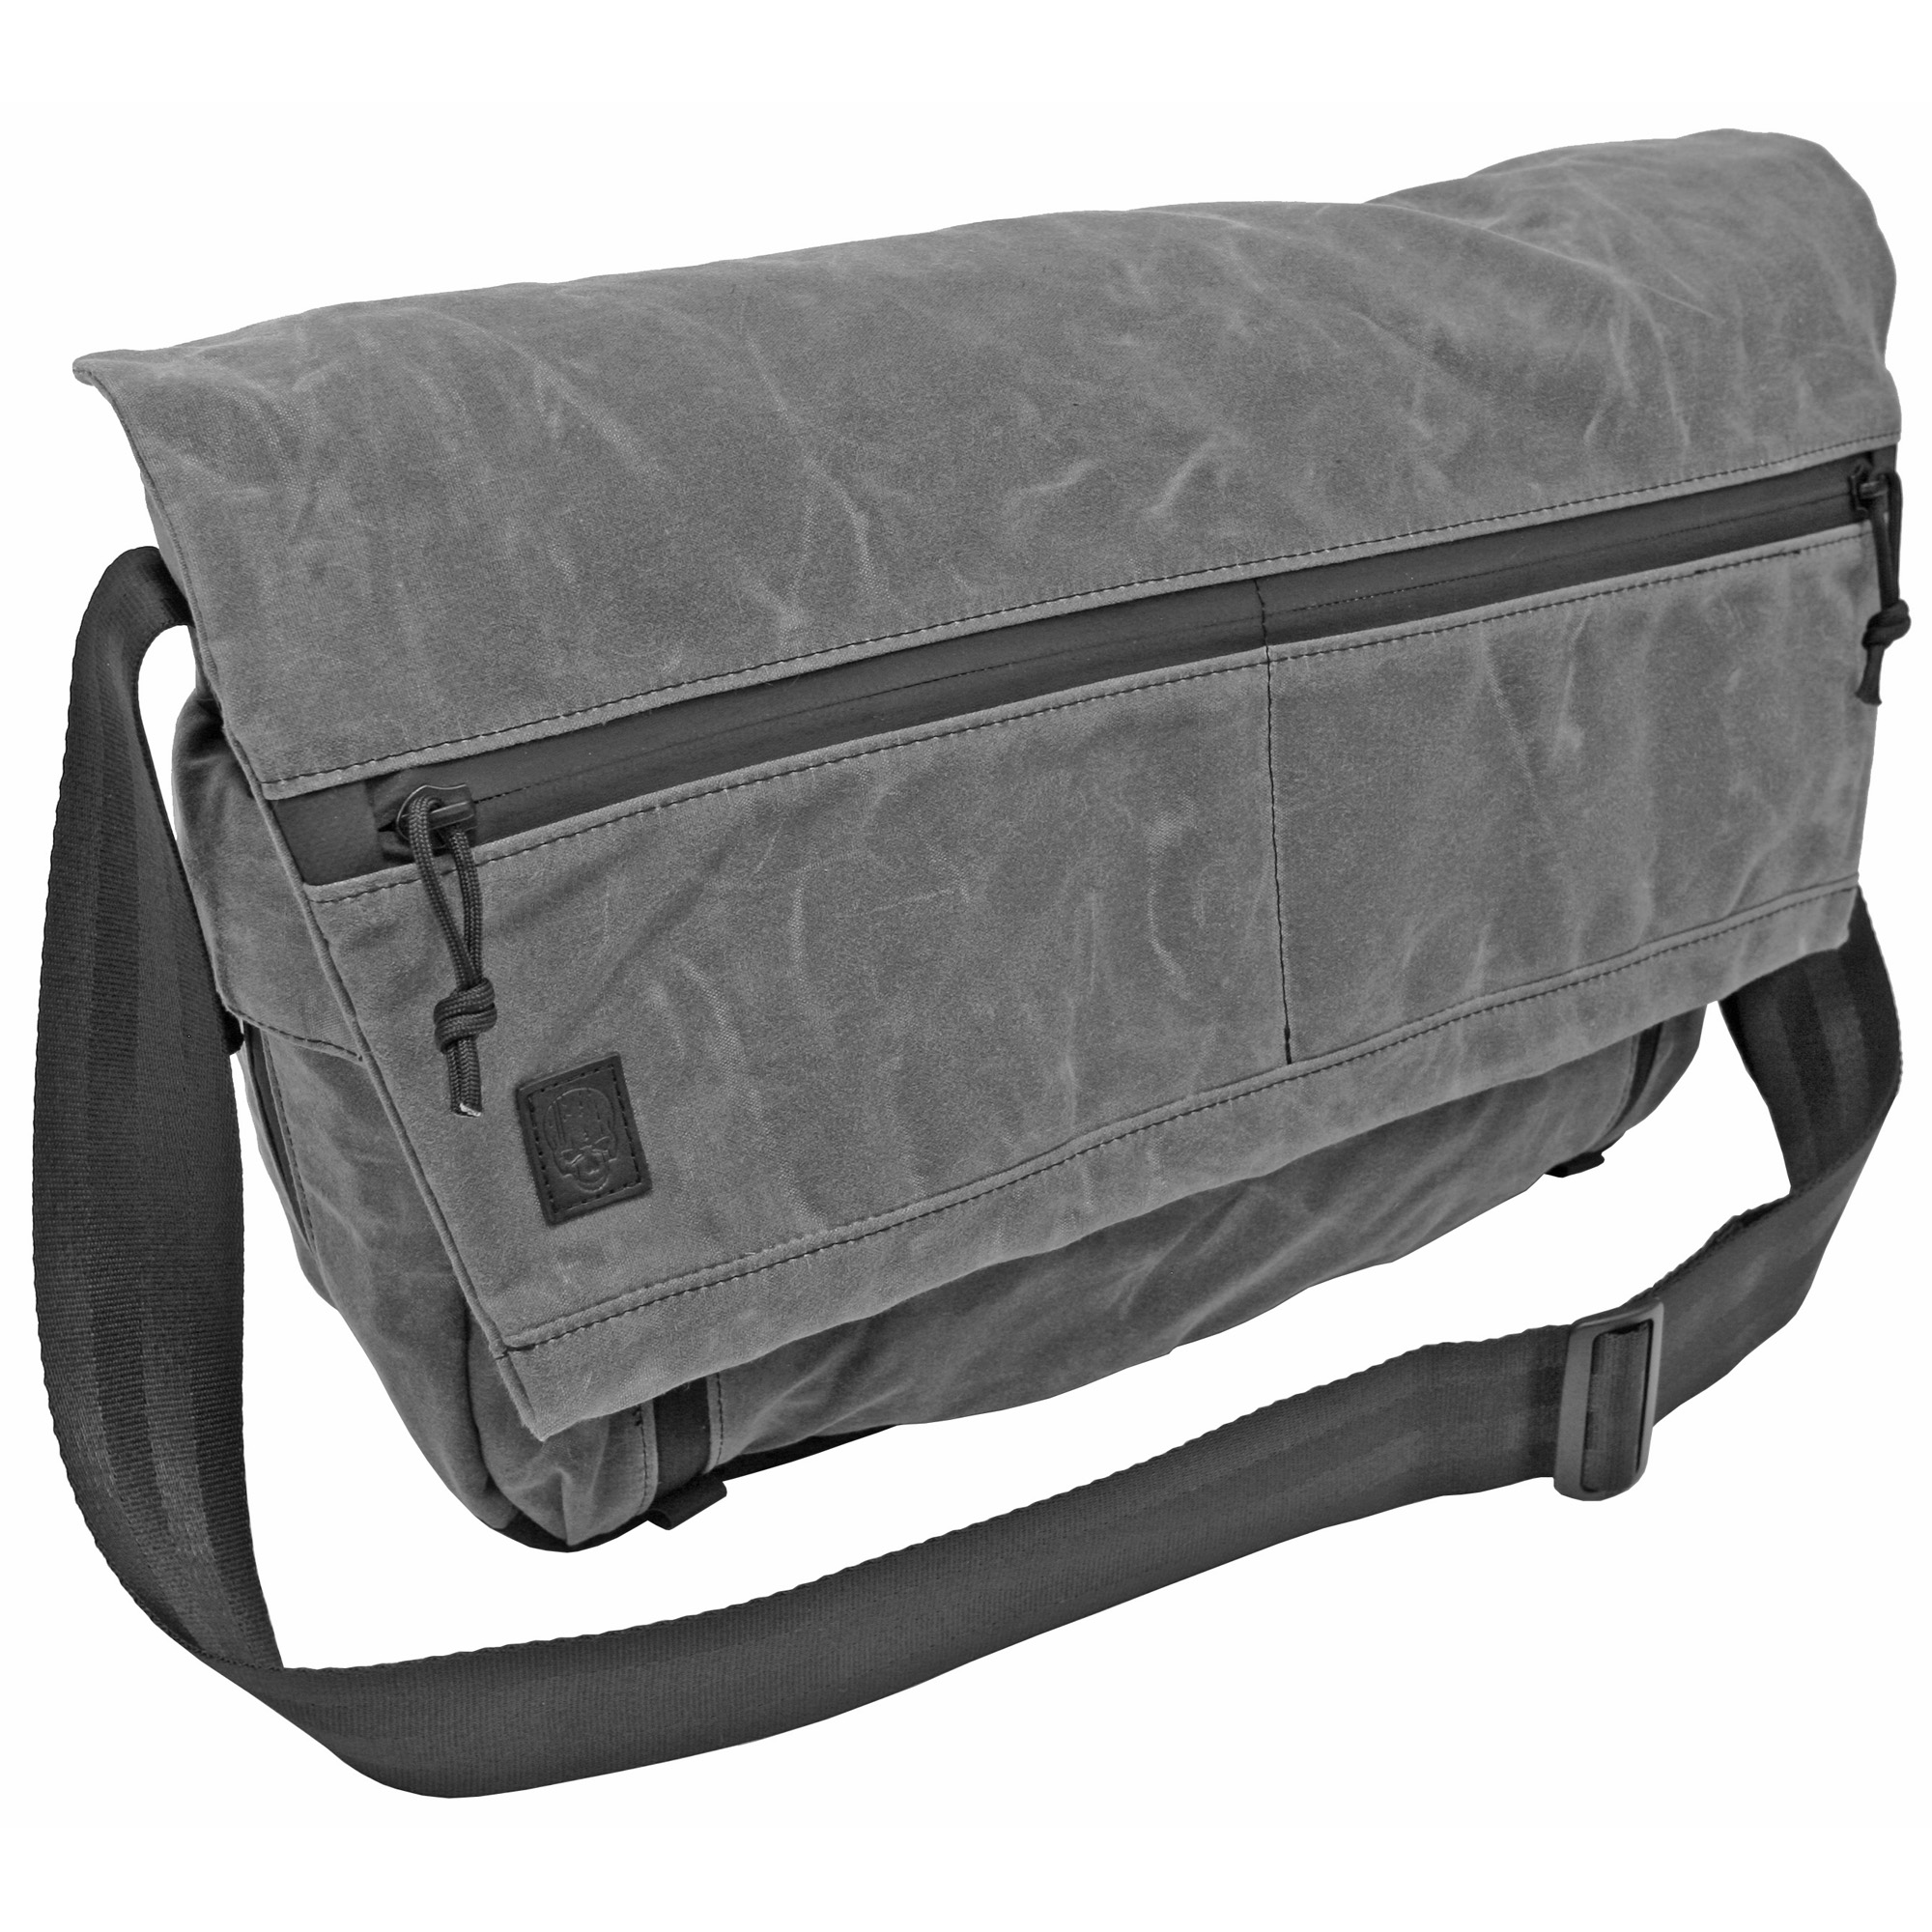 The Wanderer messenger bags are covered in a high quality canvas material that provides water repellency and long lasting quality.